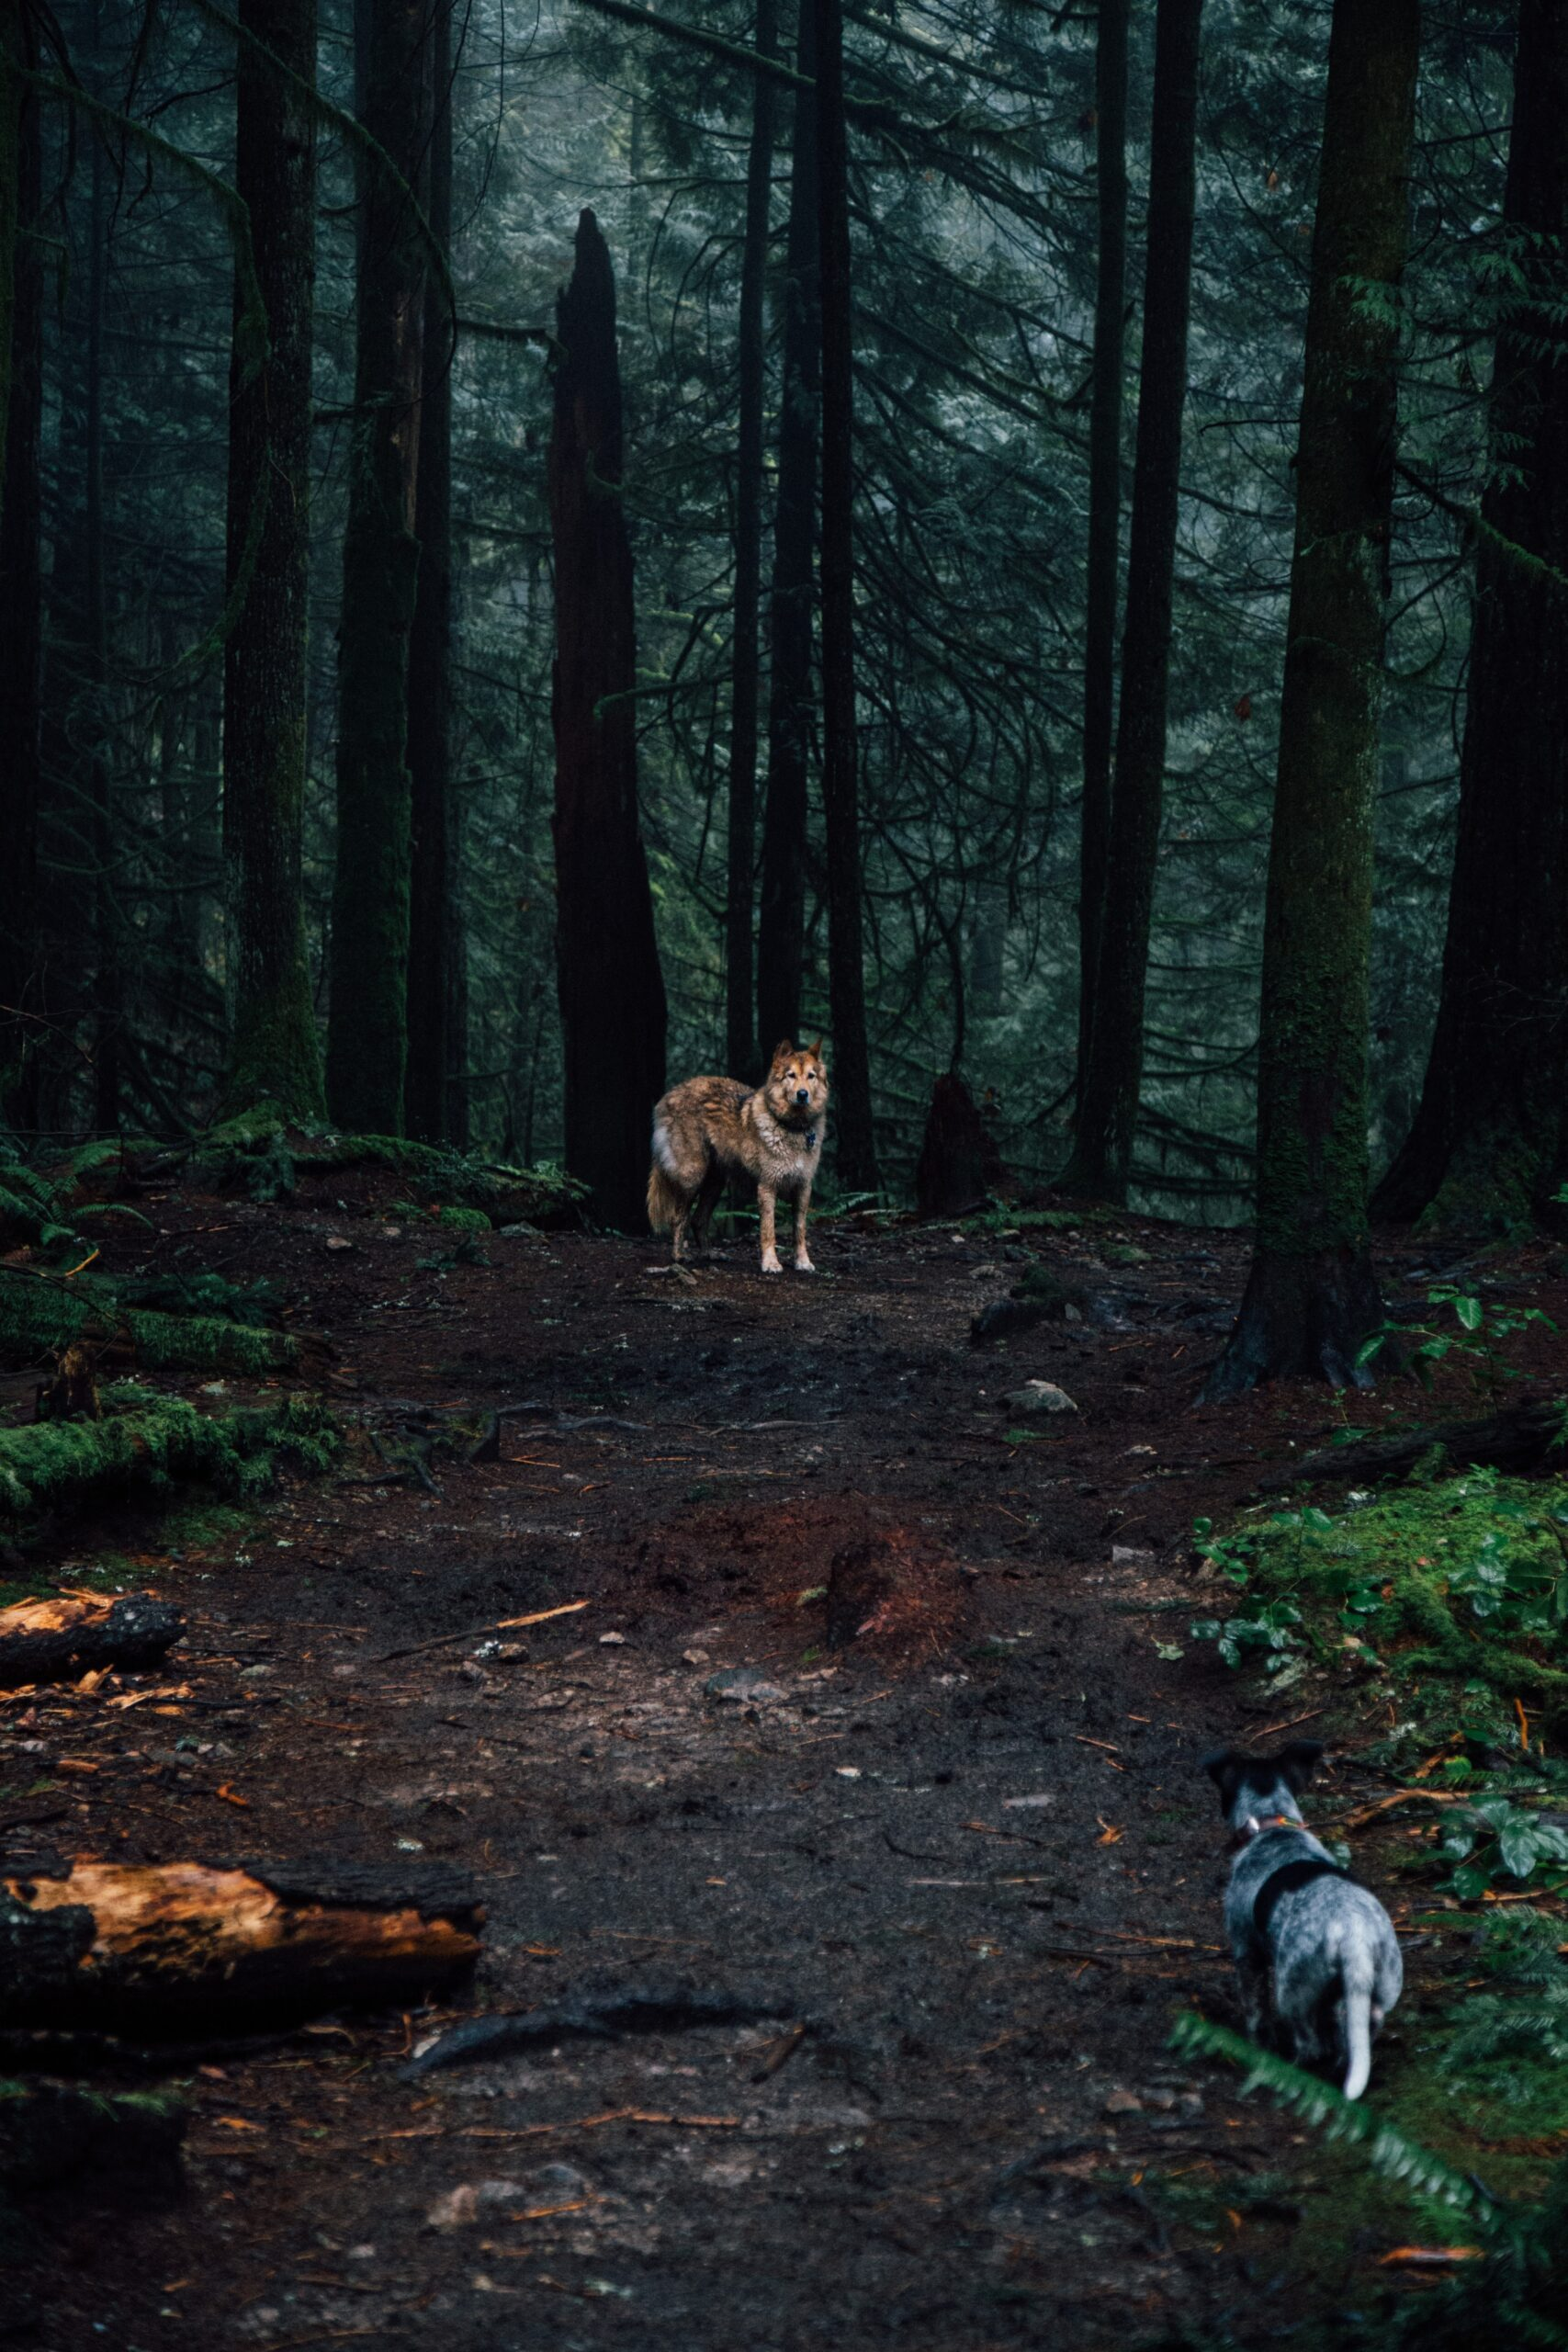 gabrielle-mustapich-Small dog meets wolf in Woods standoof and curious-unsplash